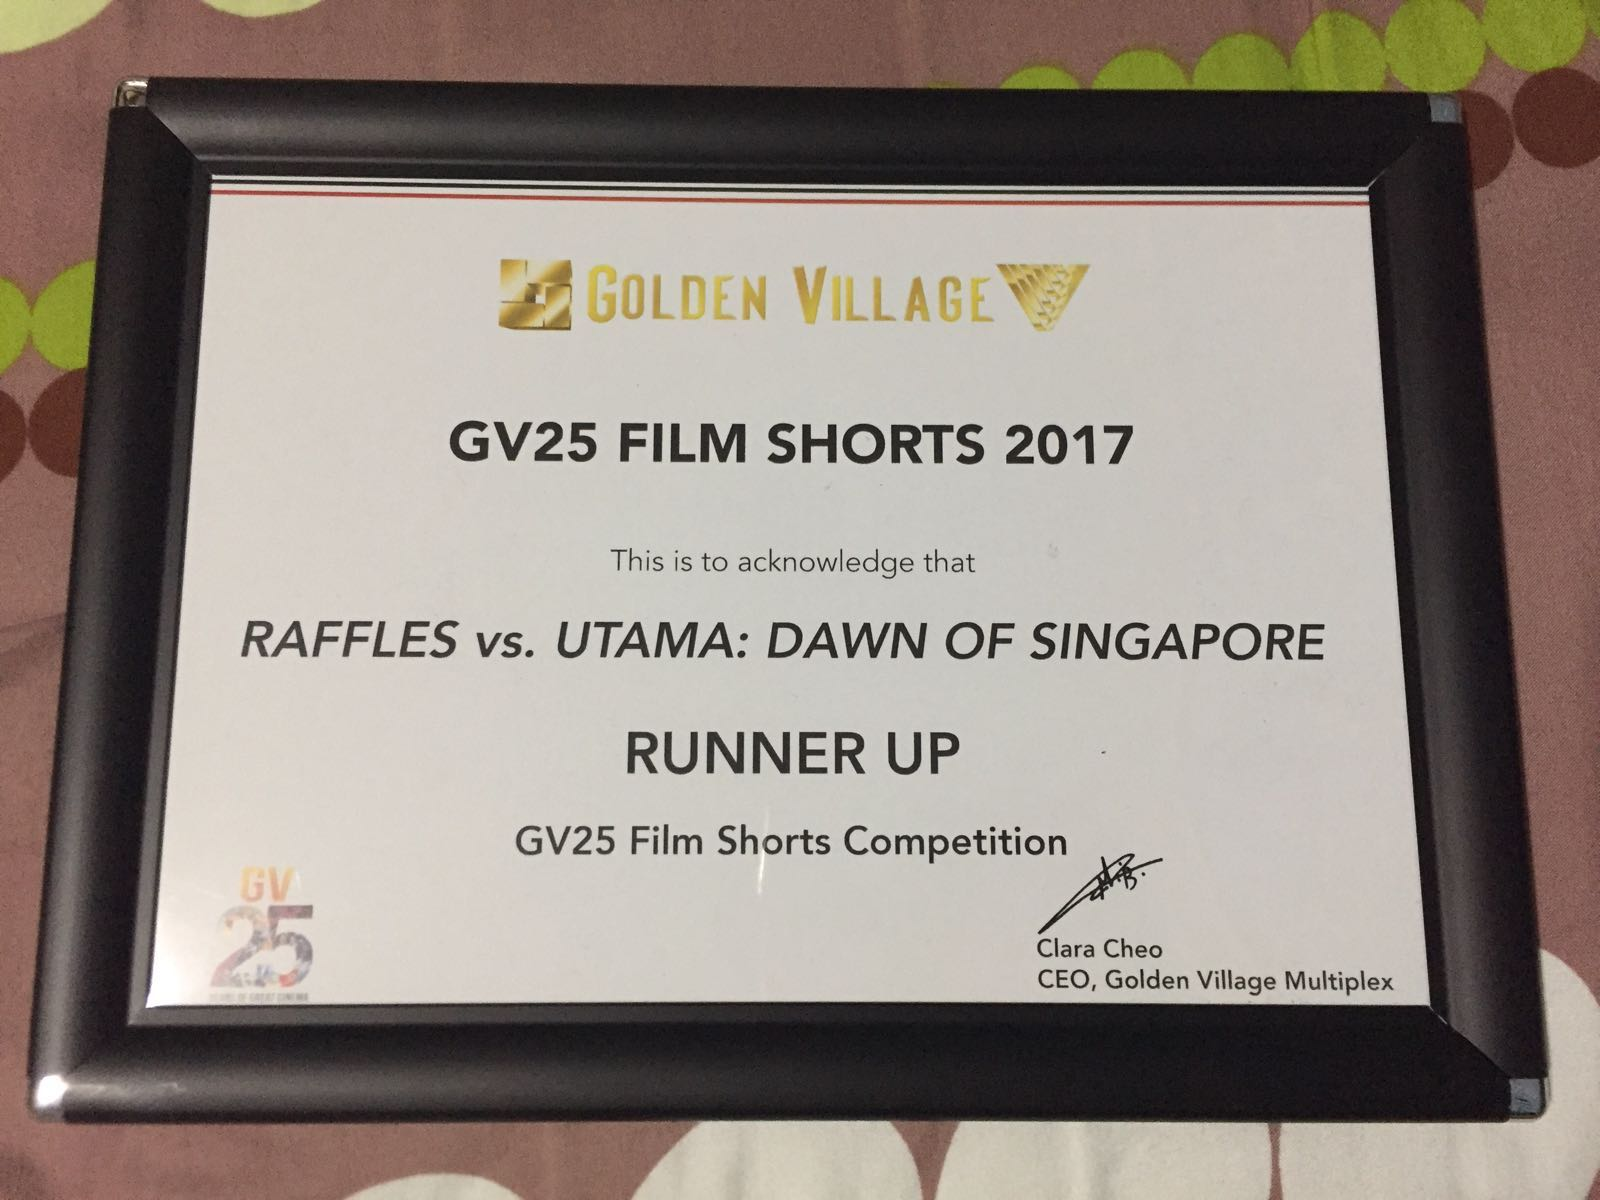 Runner Up for the GV25 Film Shorts Competition